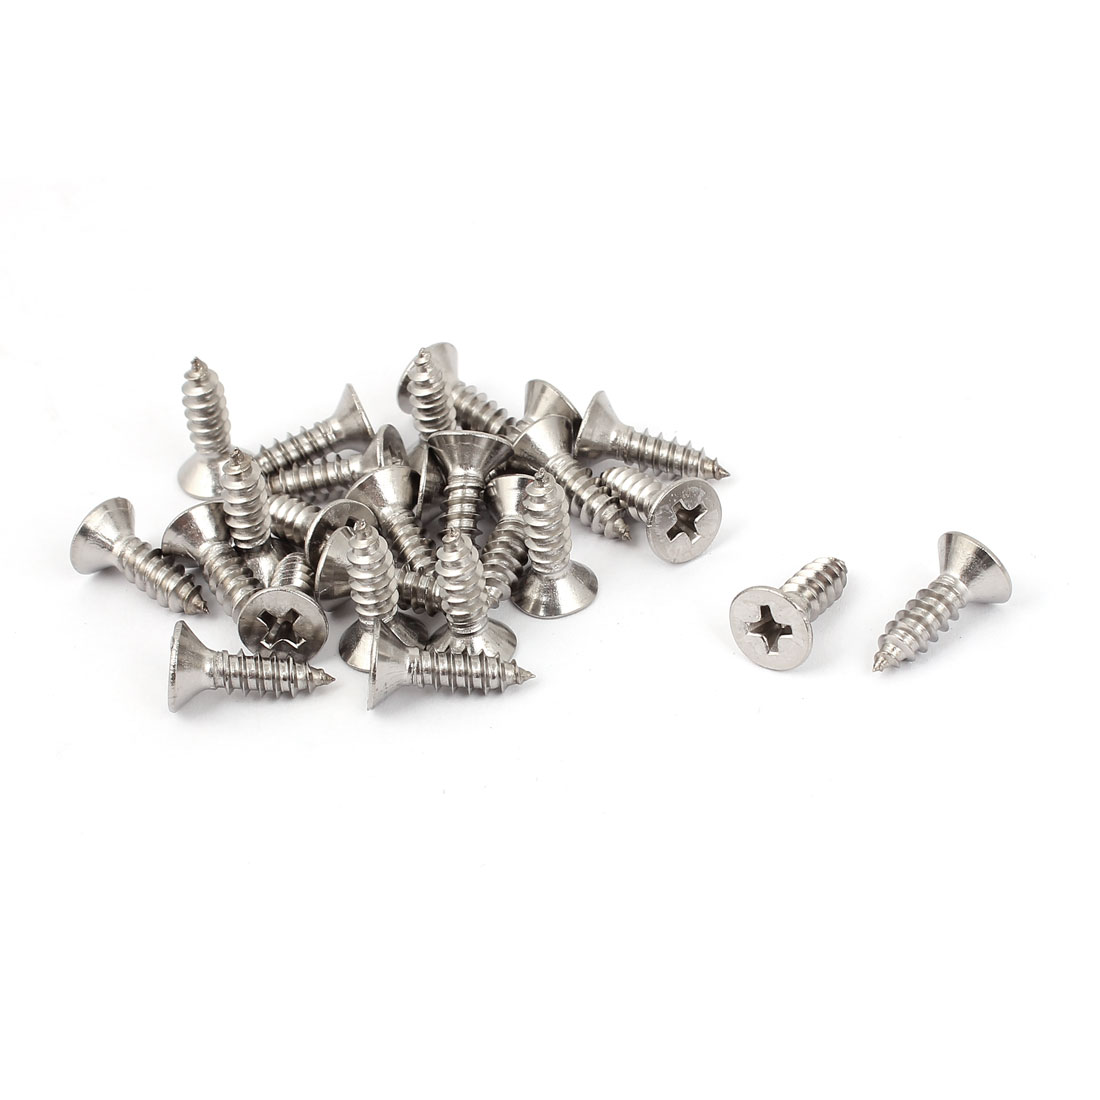 M4.8 x 16mm Cross Head Countersunk Self Tapping Screw 25 Pcs